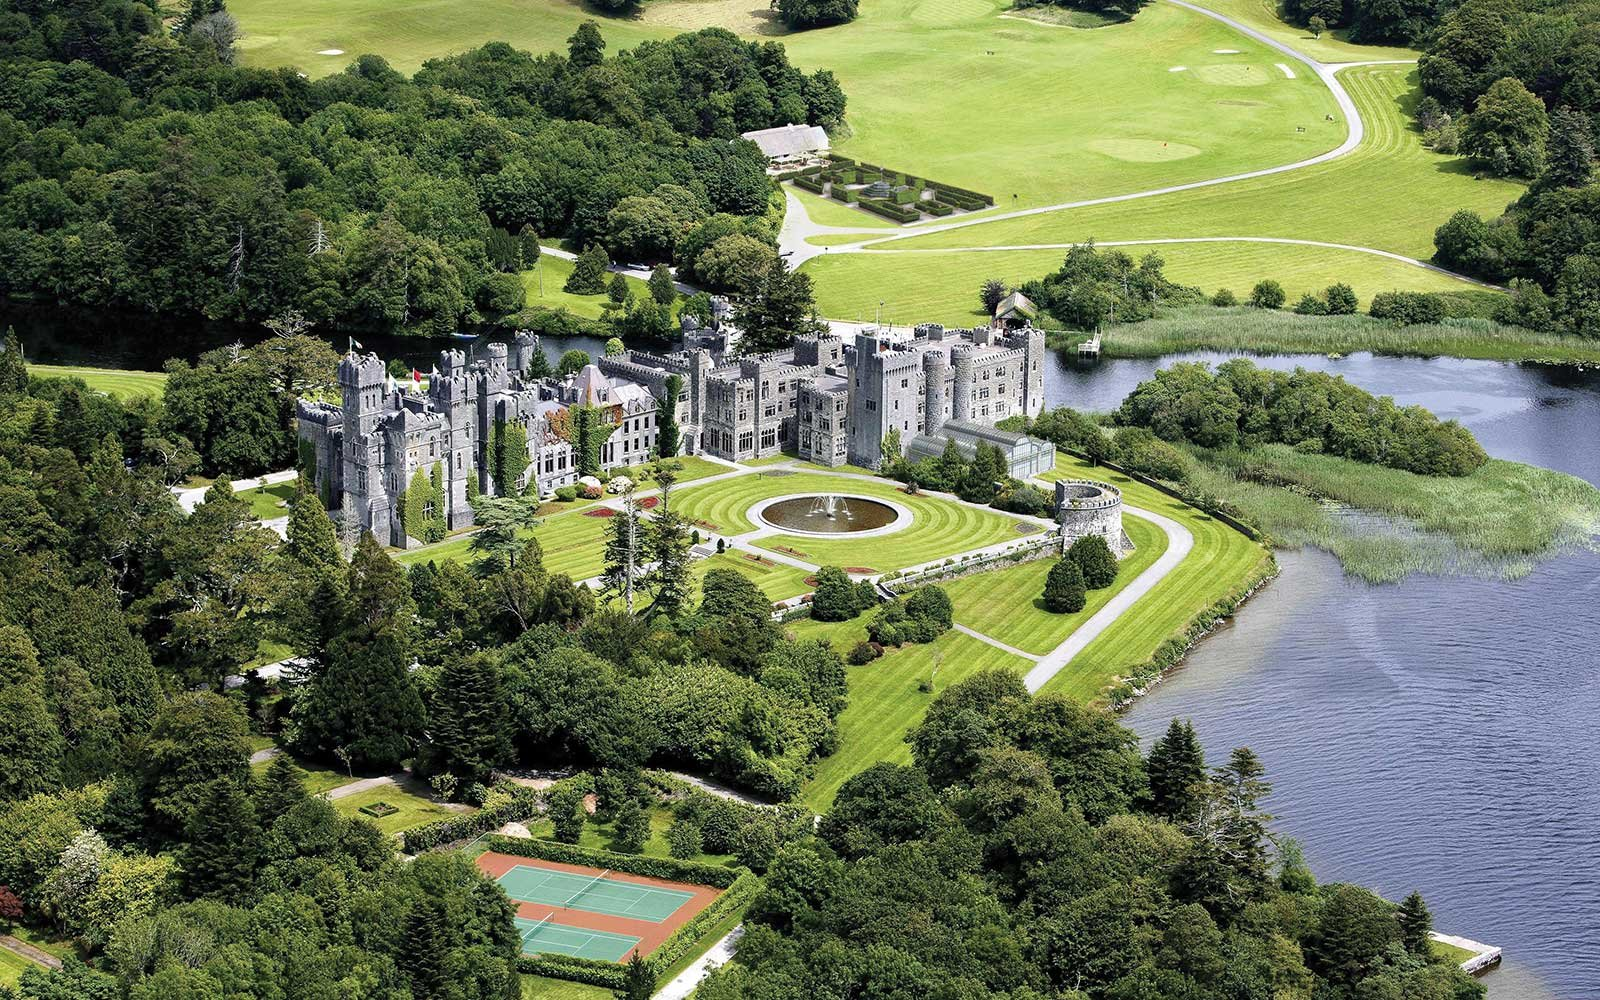 6. Ashford Castle, County Mayo, Ireland